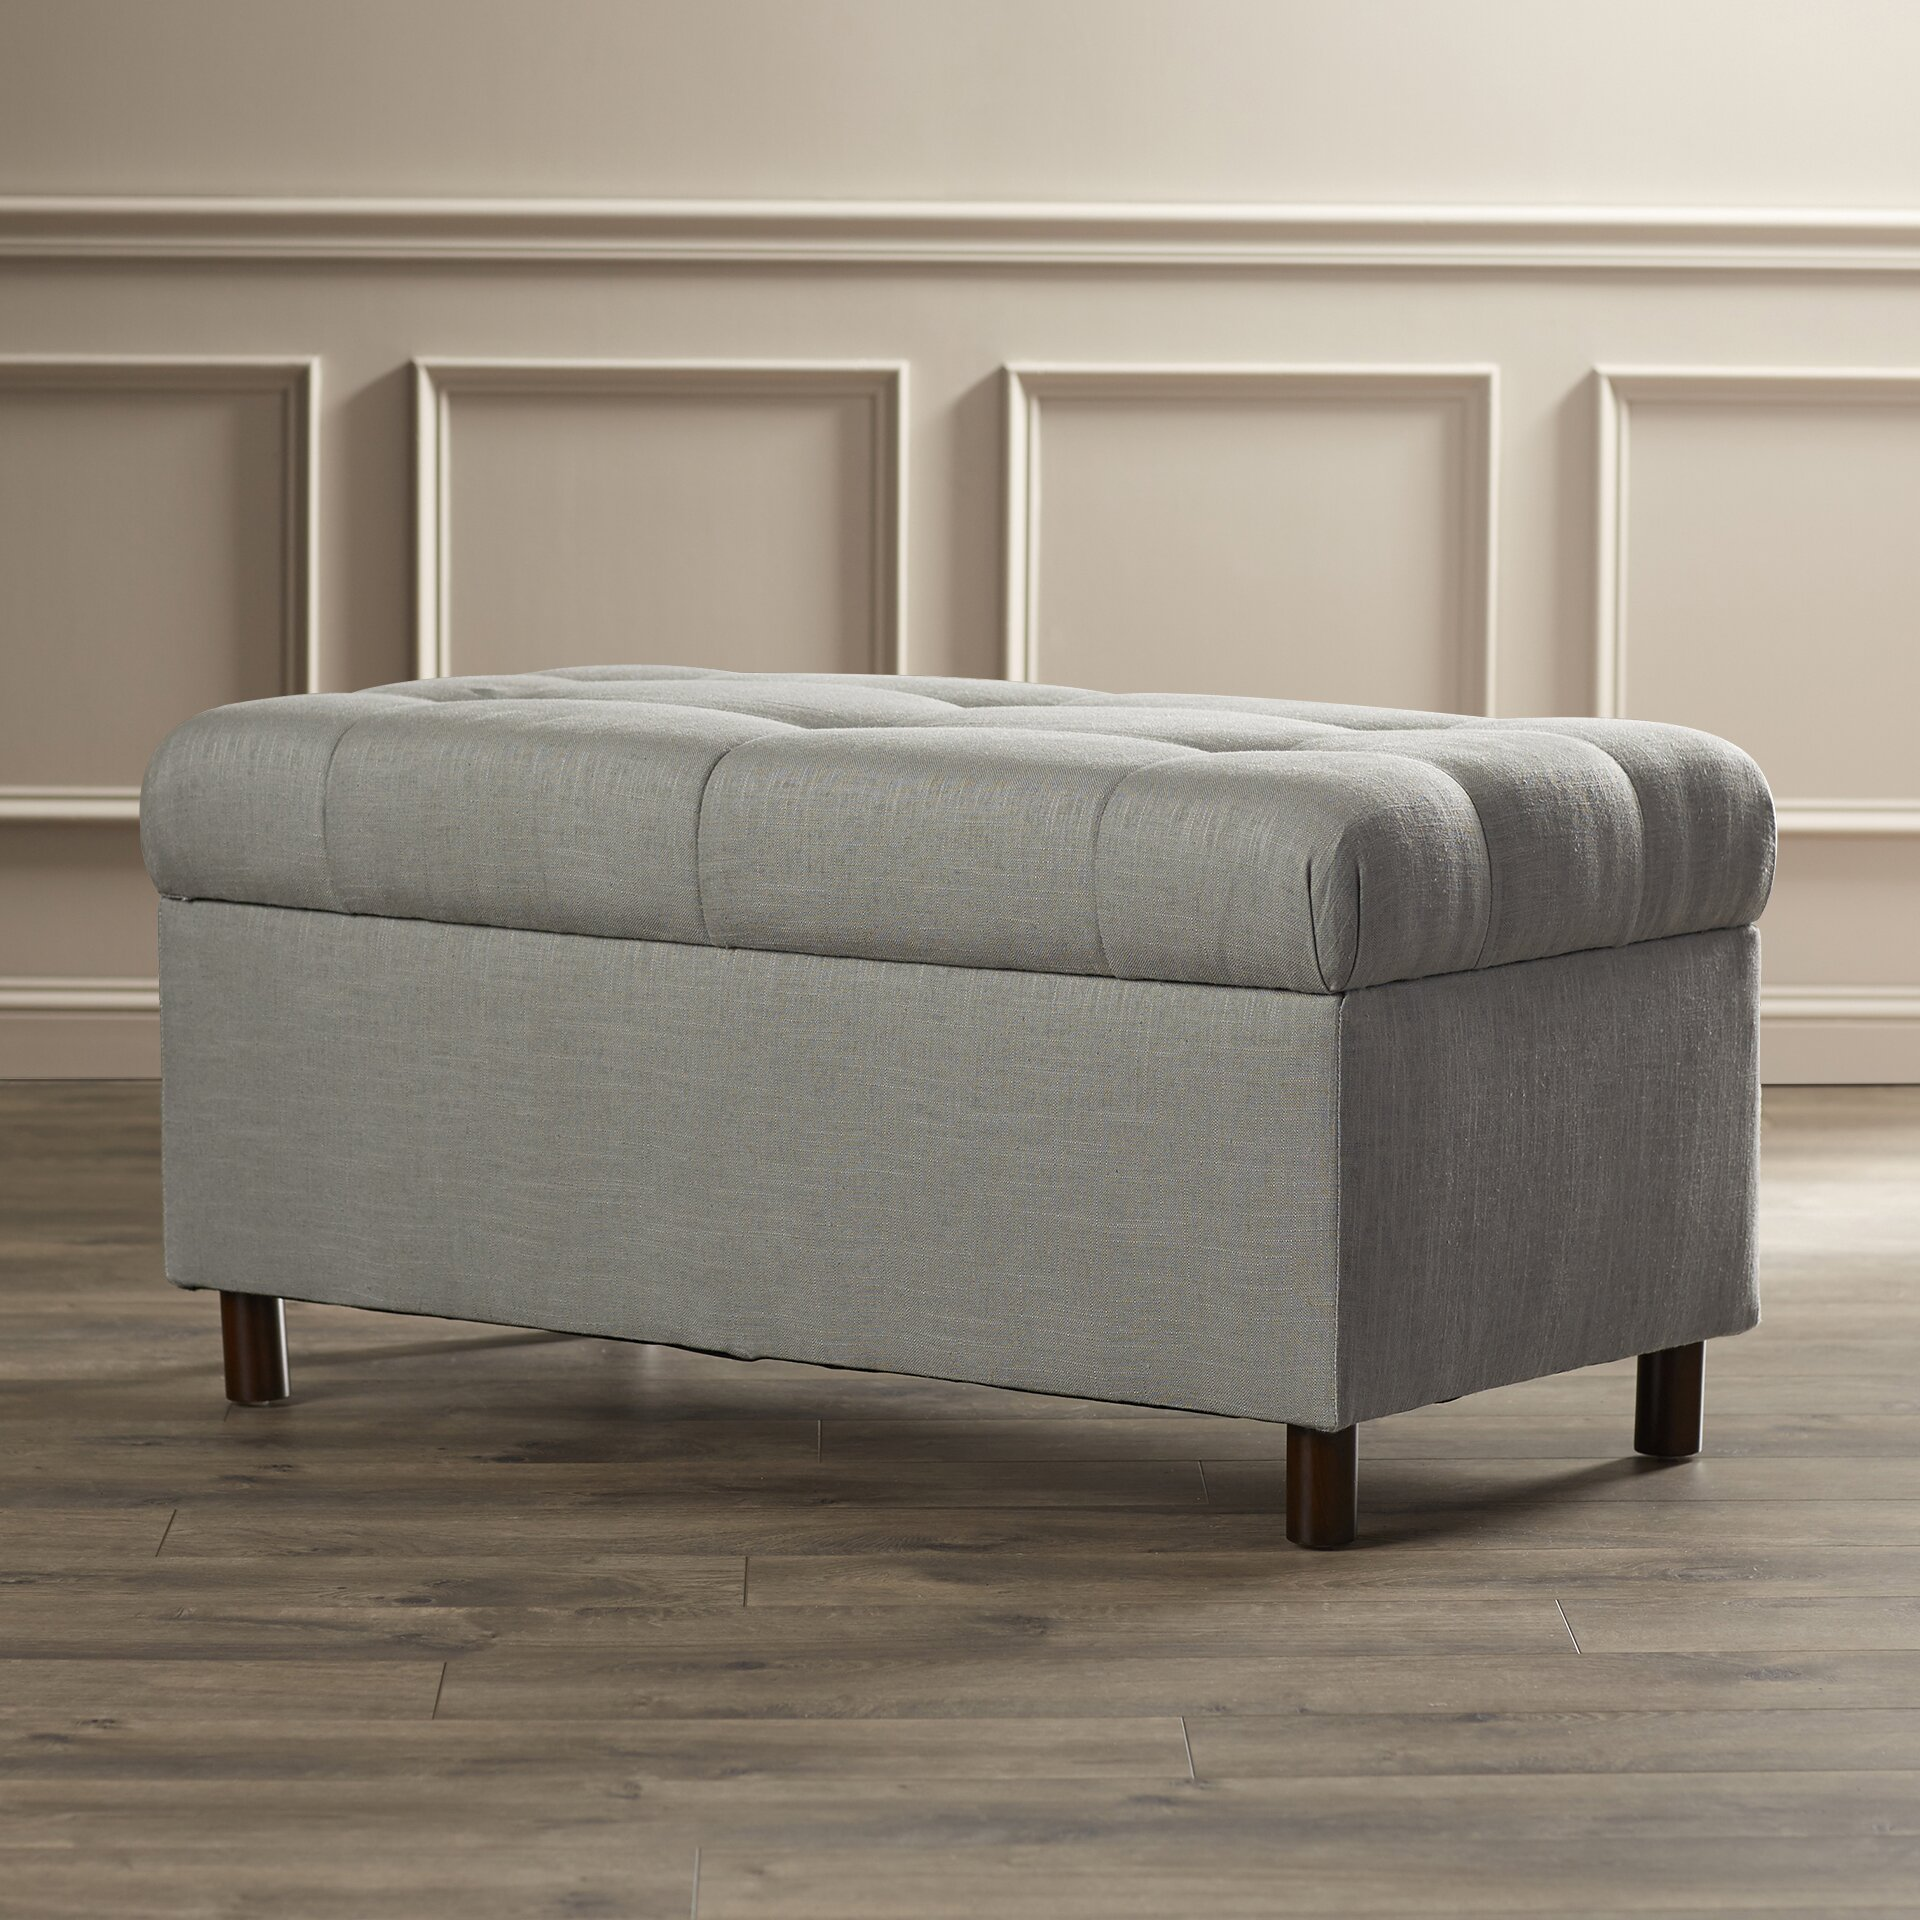 henrietta tufted linen storage bedroom bench wayfair